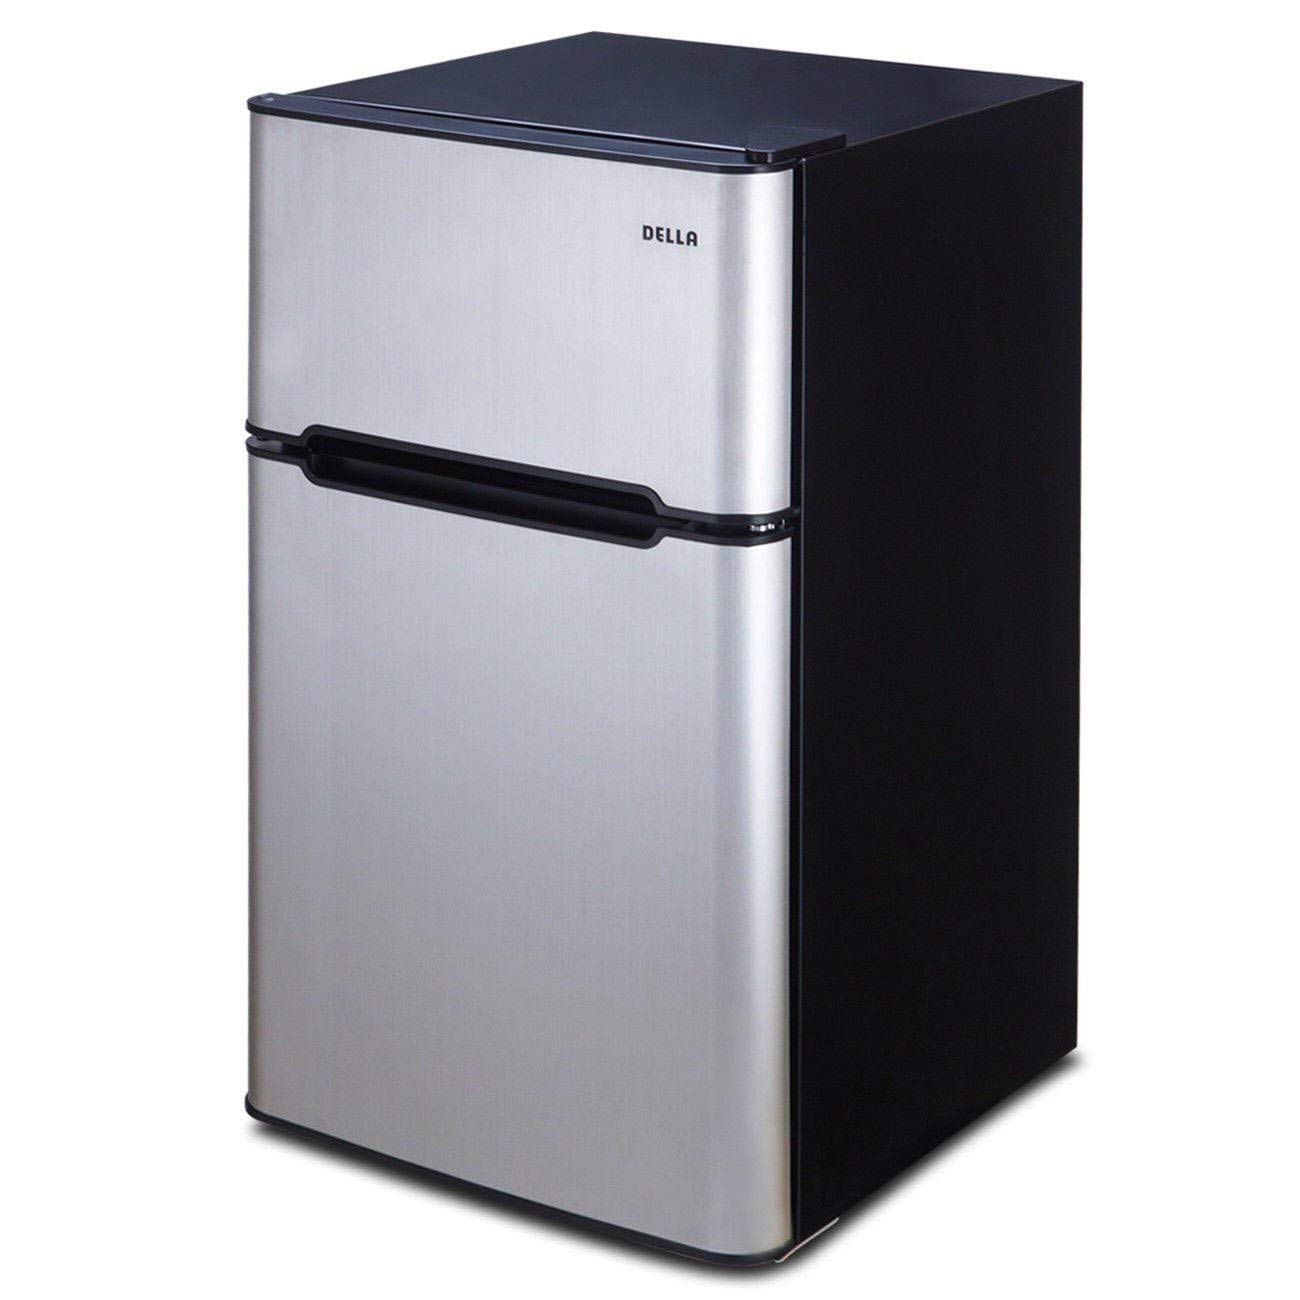 Cheap Dawlance Bedroom Fridge Prices In Pakistan Find